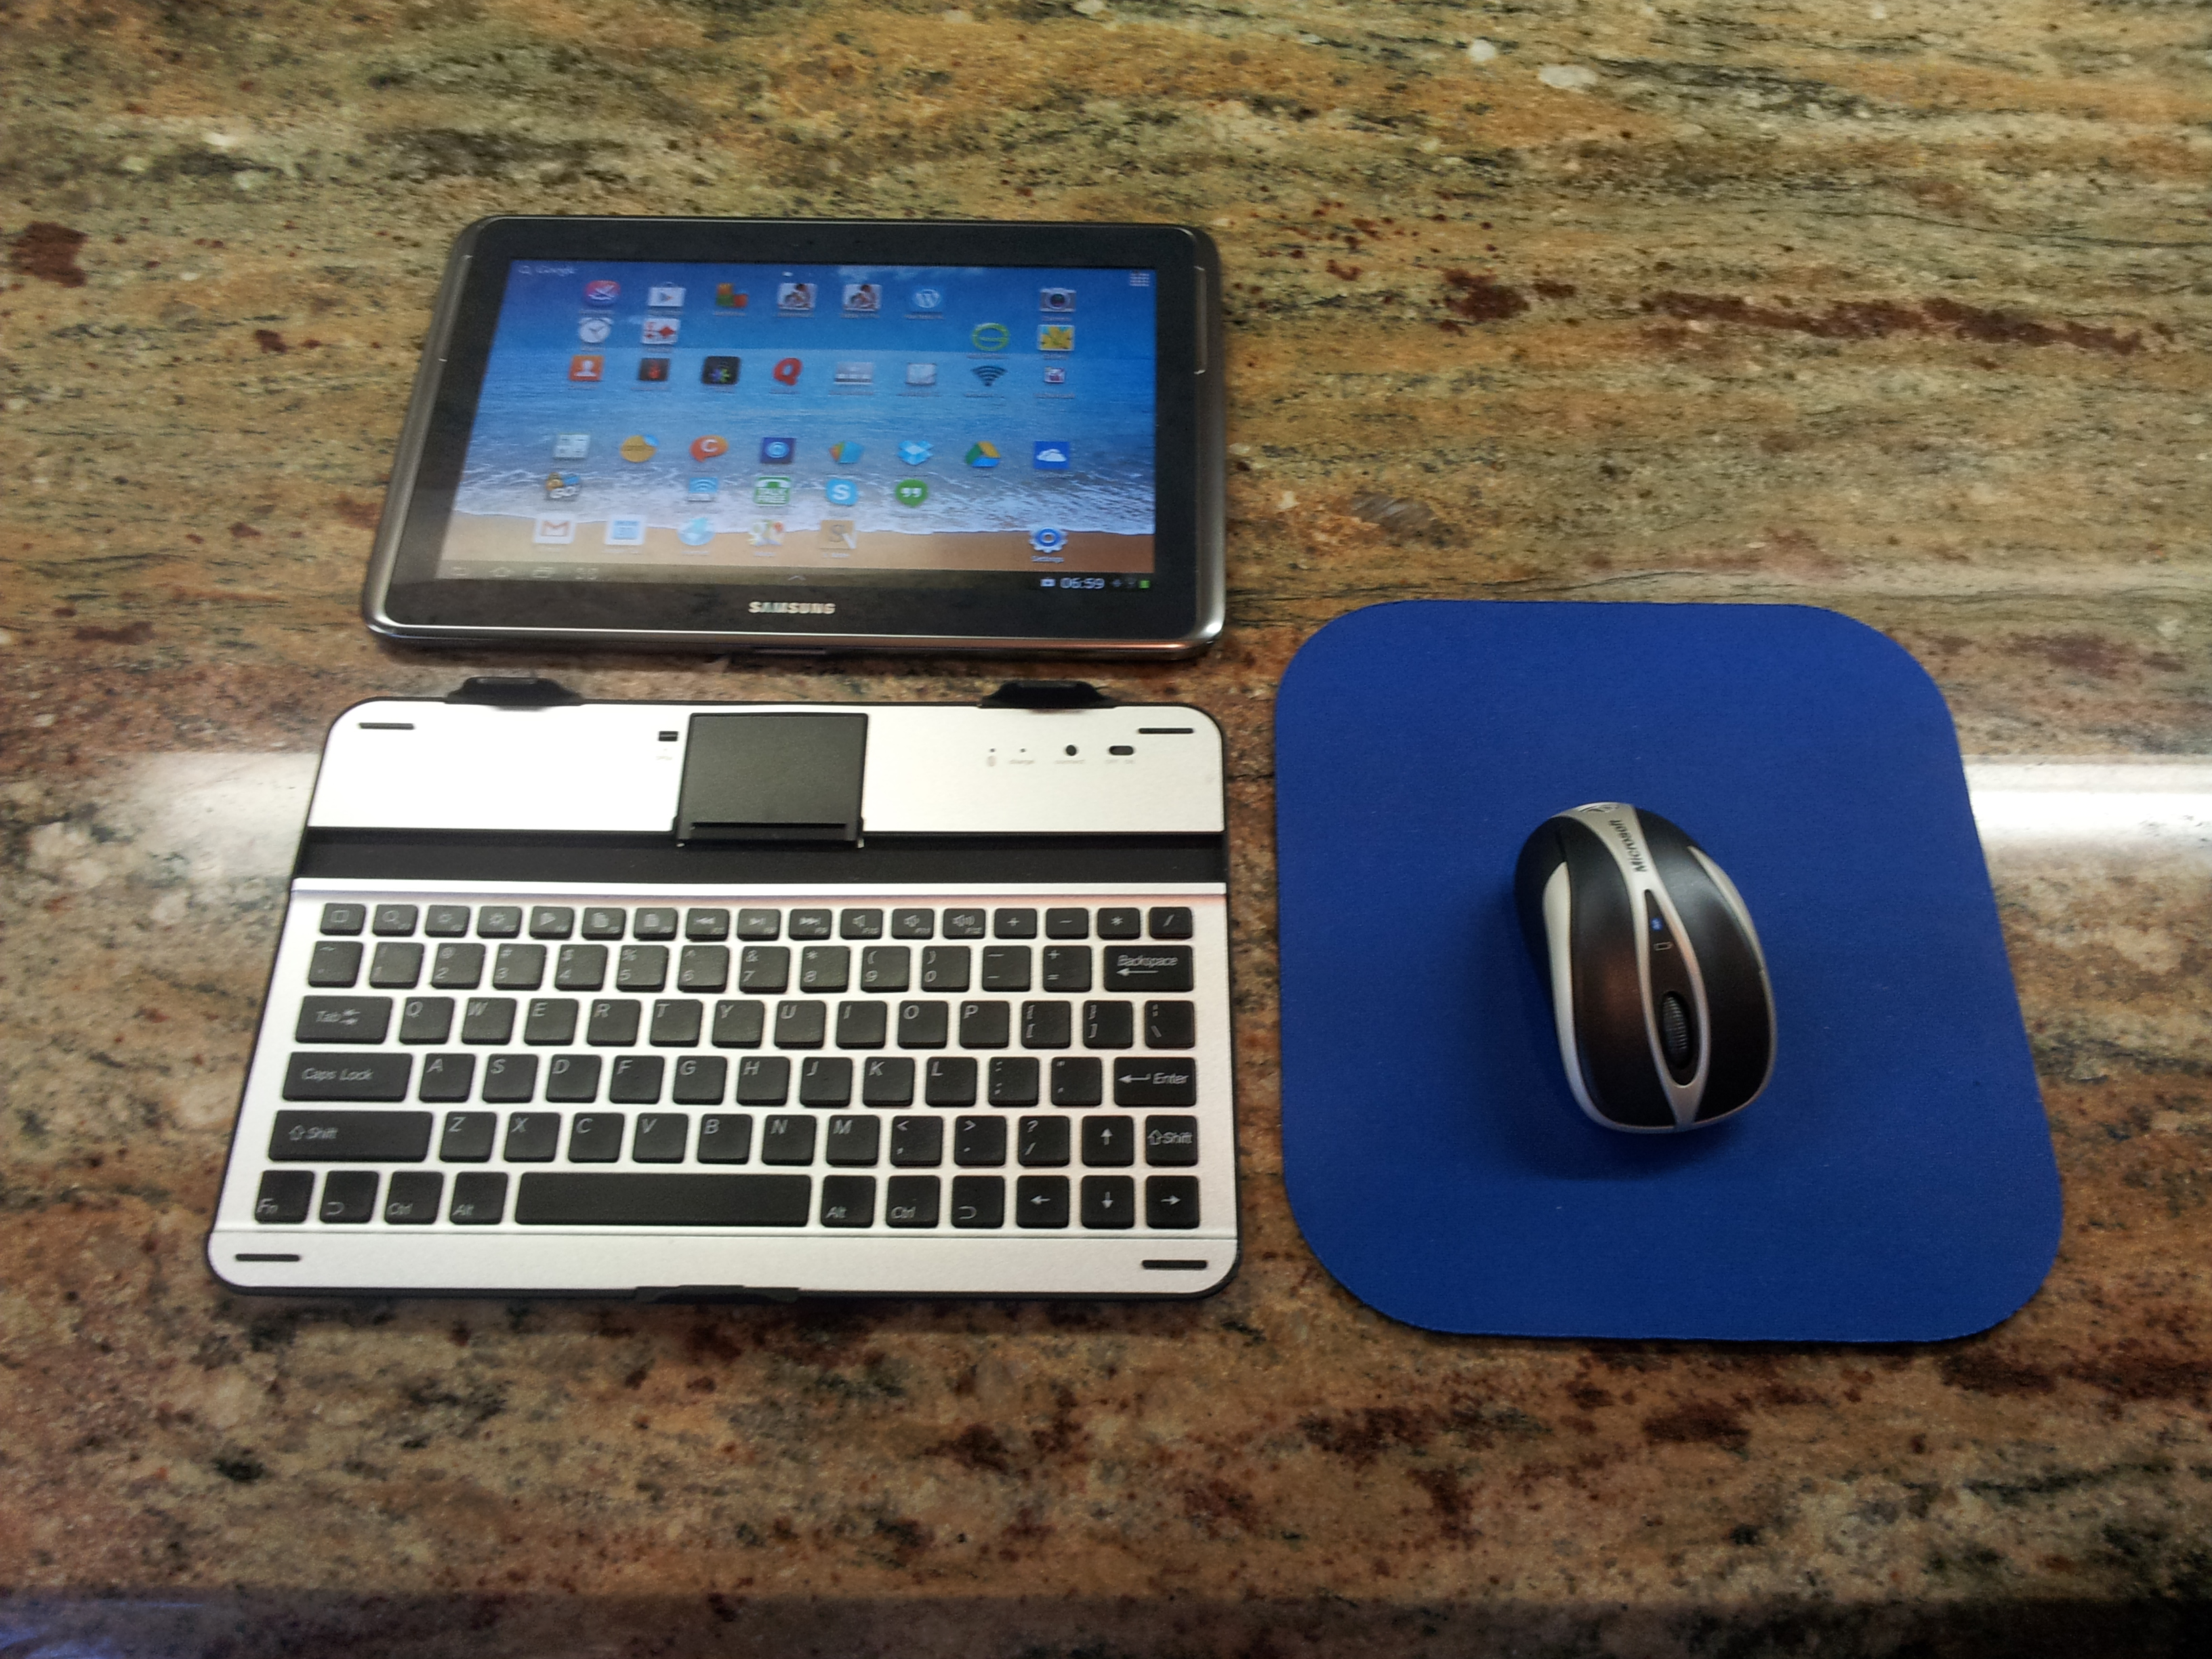 12 5 samsung galaxy note 10 1 with keyboard mouse 2013 05 27 today 39 s personal computing